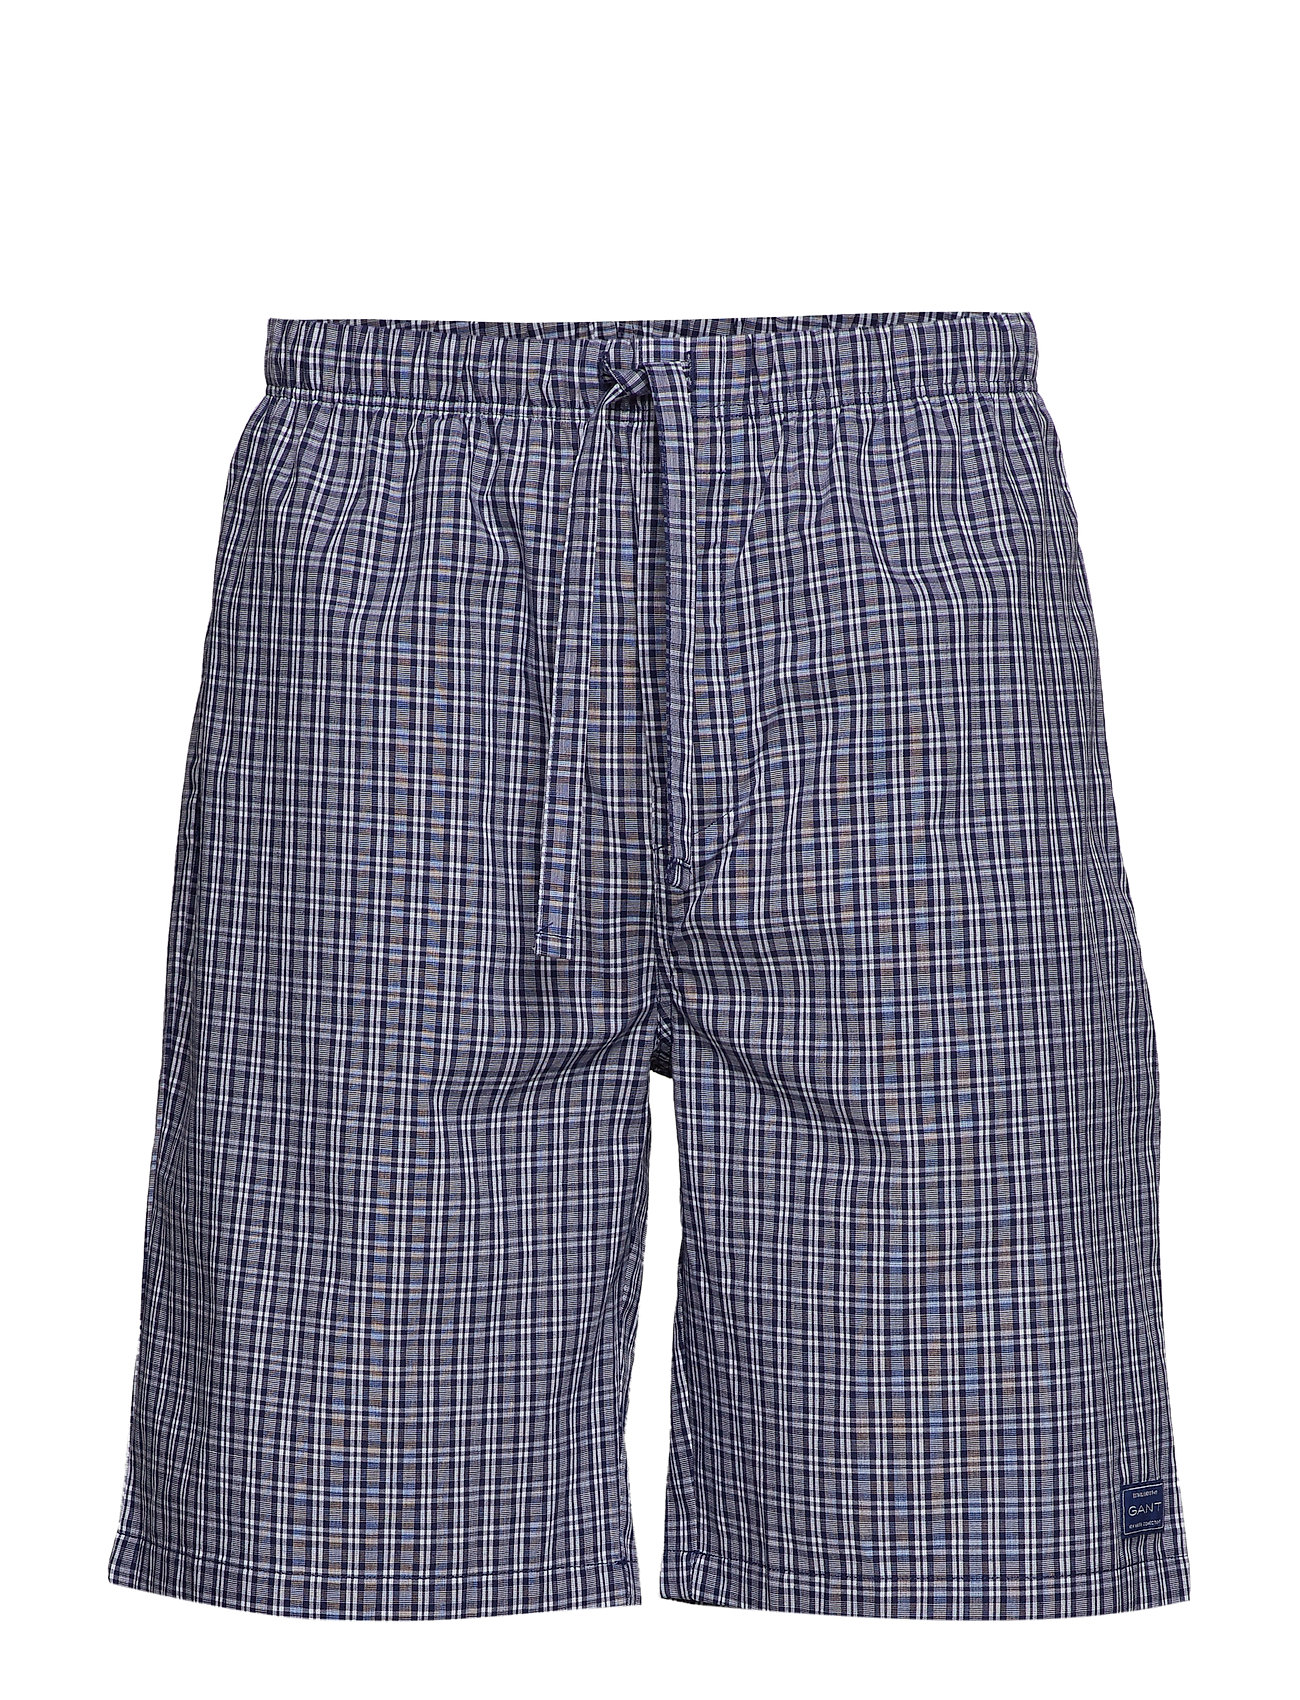 GANT PAJAMA SHORTS WOVEN SMALL CHECK